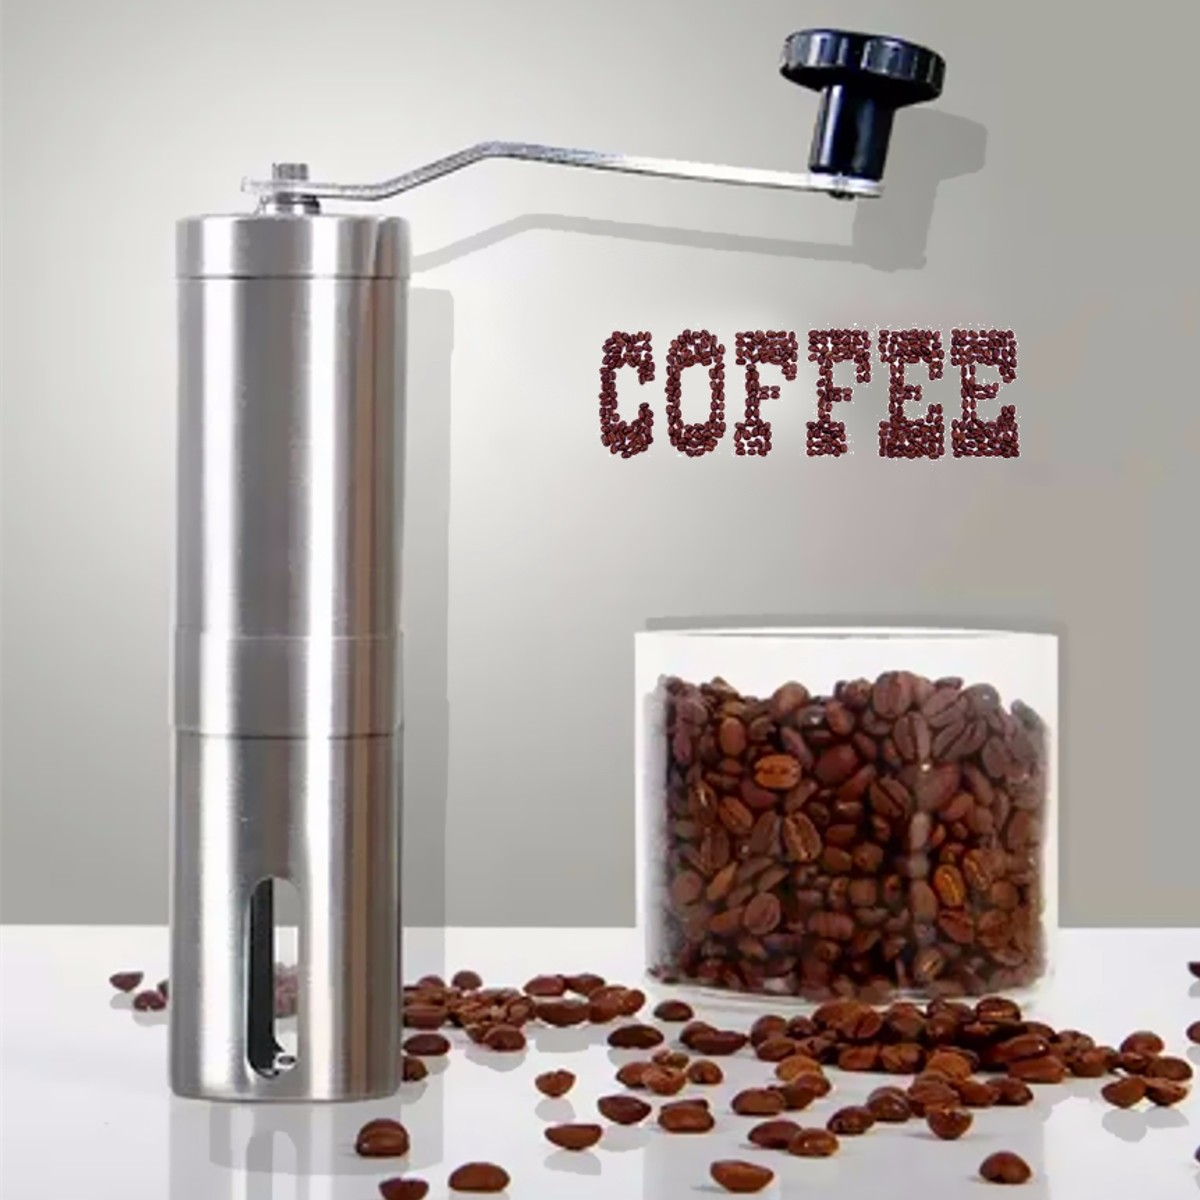 Manual Coffee Grinder Coffee Maker ceramics Core 304 Stainless Steel Hand Burr Mill Grinder Ceramic Corn Coffee Grinding Machine high quality hand coffee grinder manual coffee bean pepper grinder ceramic burr nut mill home office coffee maker